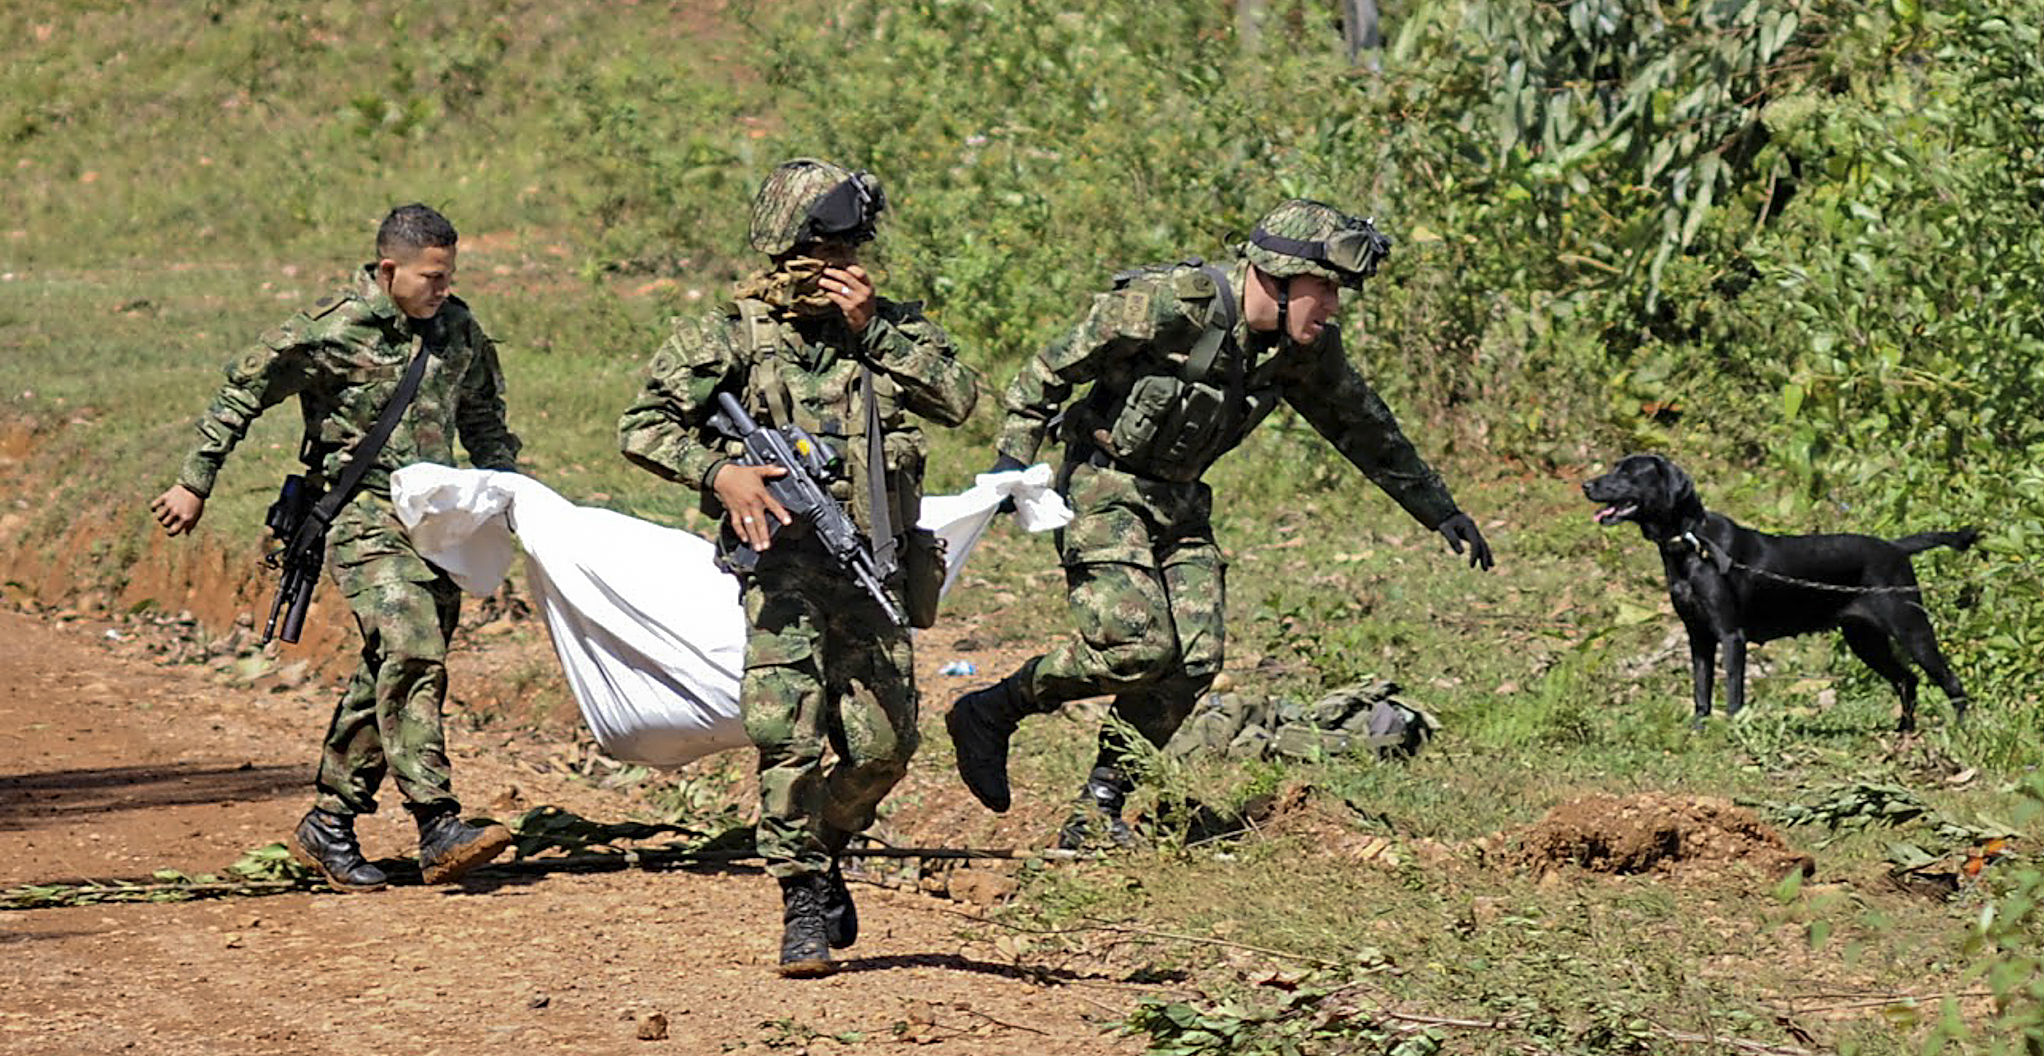 Colombian soldiers carry one of the corpses of comrades killed in an attack by rebels in the western province of Cauca on Wednesday. Photo: AFP